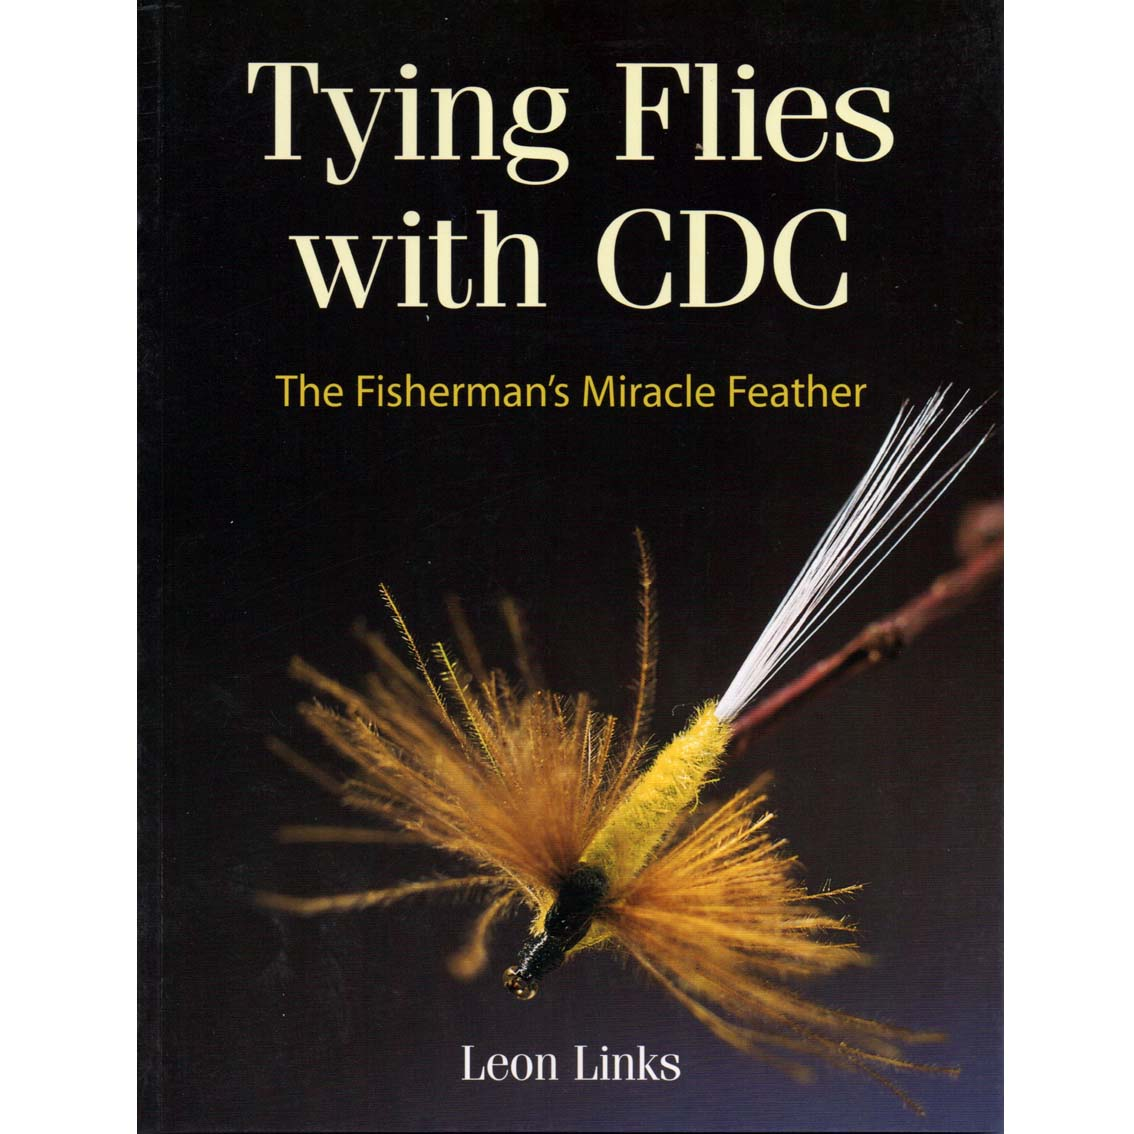 Livro Tying Flies with CDC: The Fisherman's Miracle Feather (Leon Links)